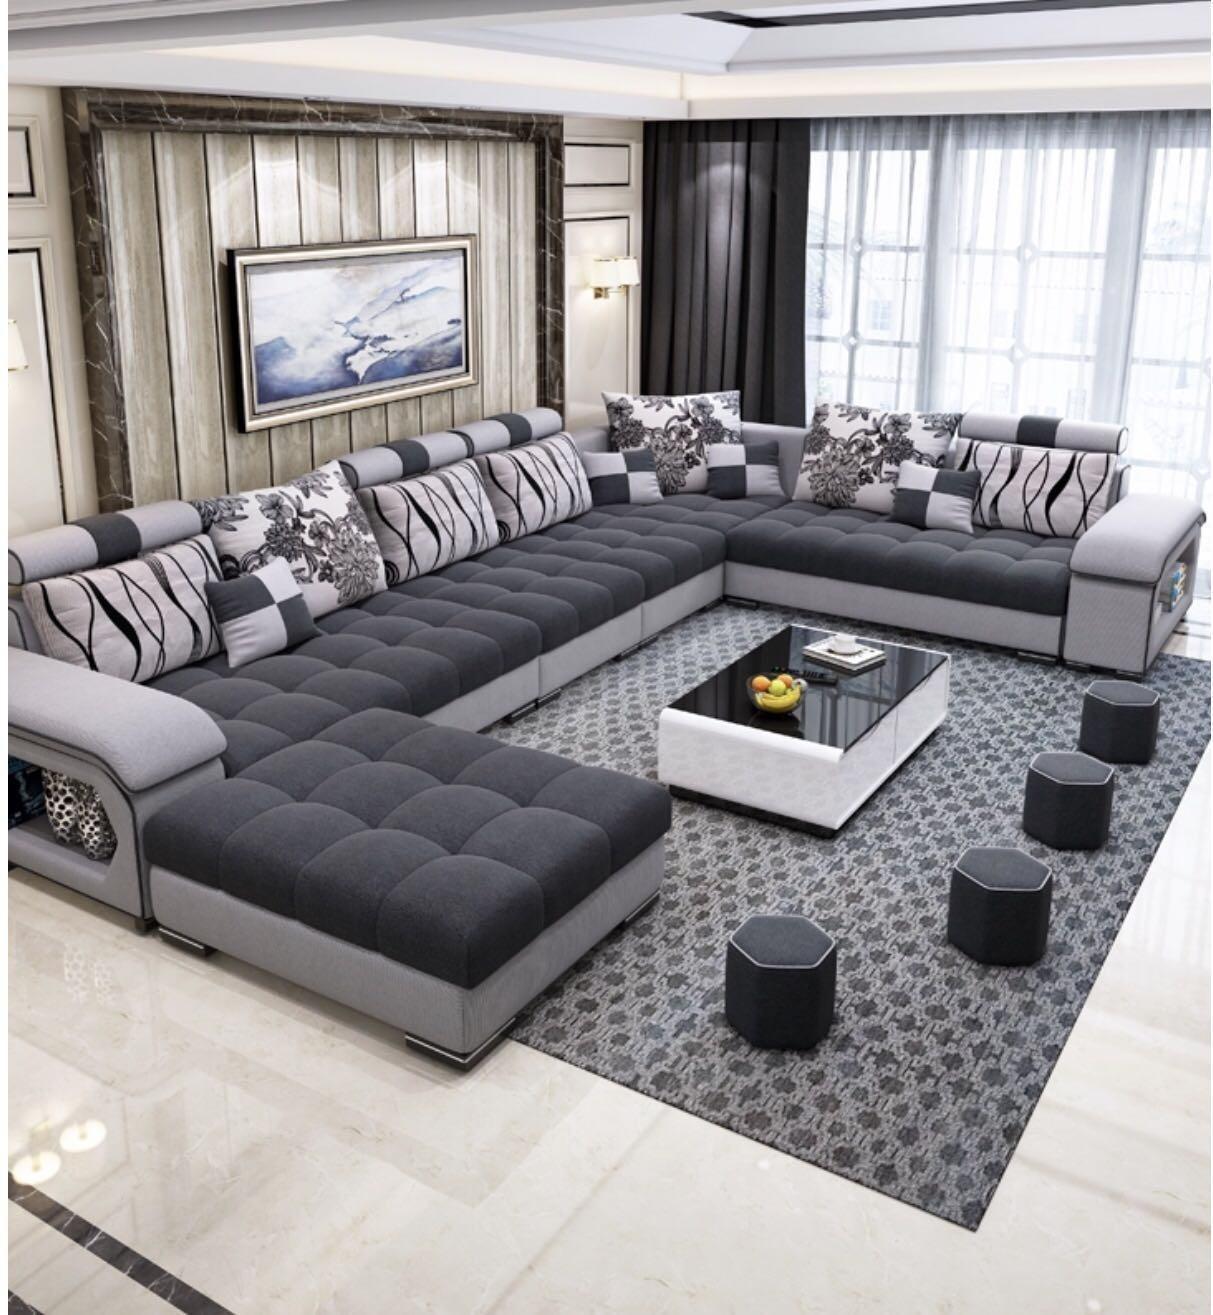 Furniture Factory Provided Living Room Furniture Designs Washable 7 Seats Sofa Set Fabric Sofas